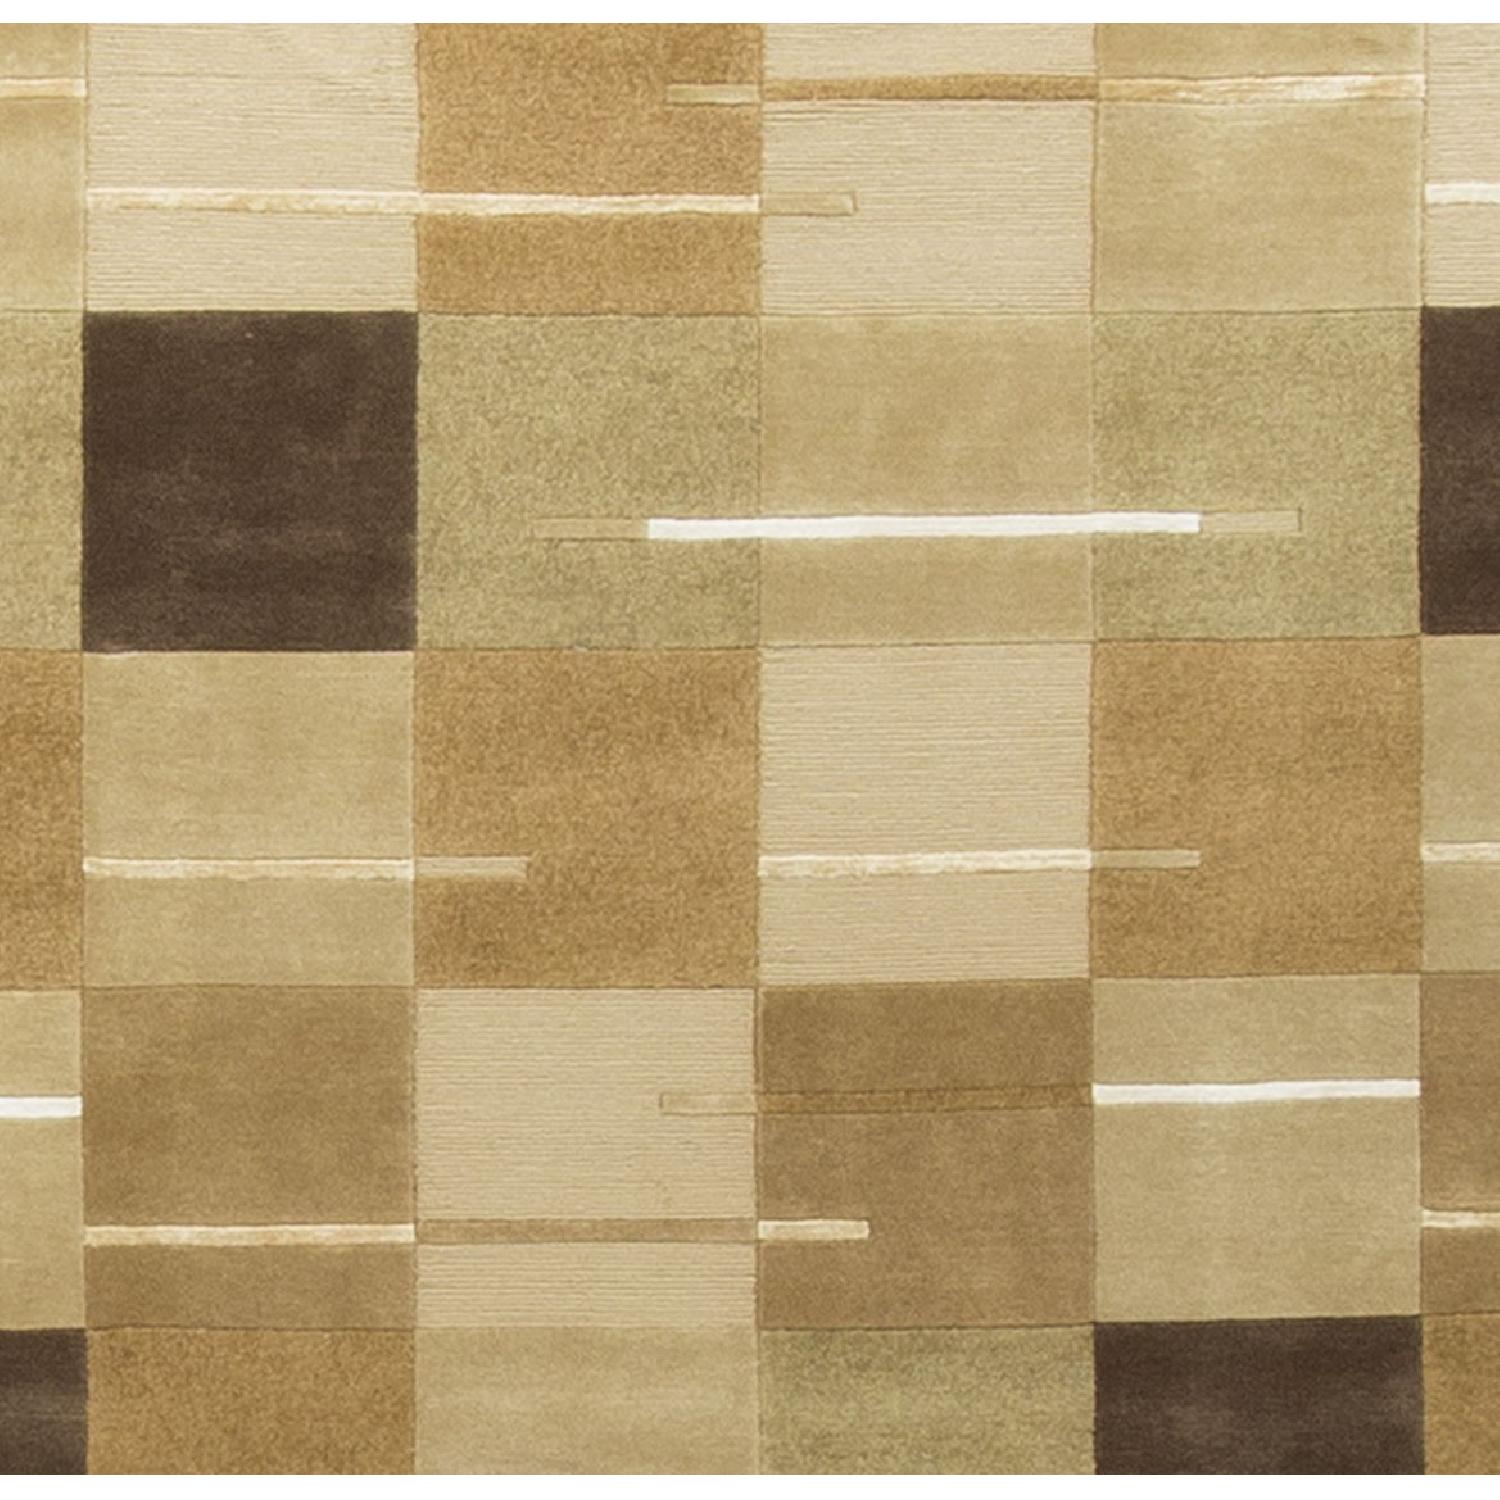 Modern Contemporary Hand Knotted Wool Rug in Beige/Brown/White/Multi - image-2